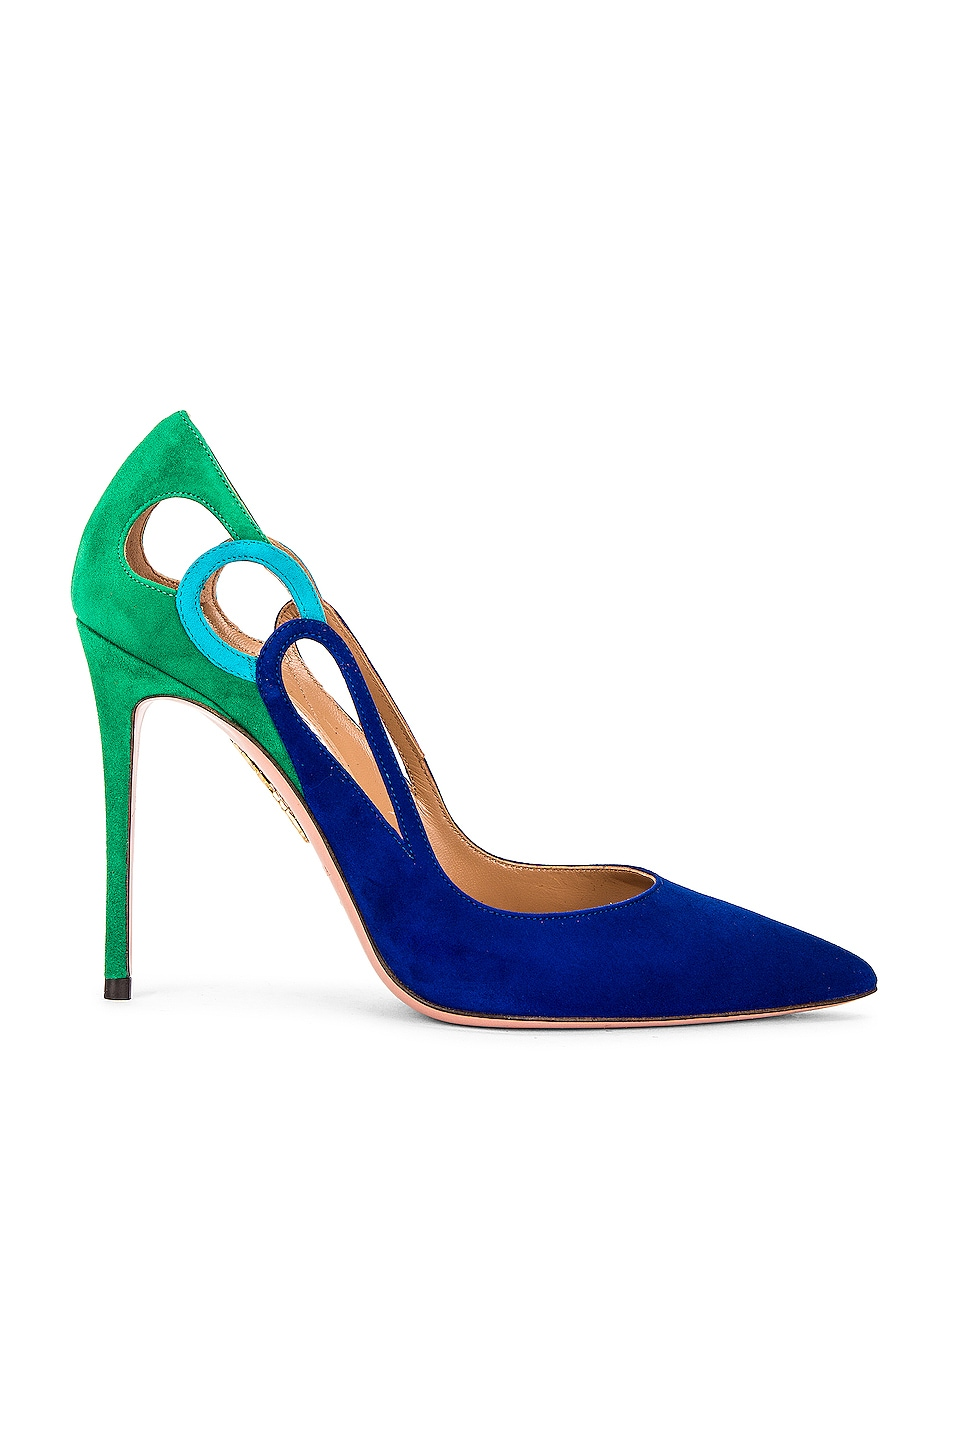 Image 1 of Aquazzura Fenix 105 Pump in Lapis Blue, Lagoon Blue & Rich Emerald